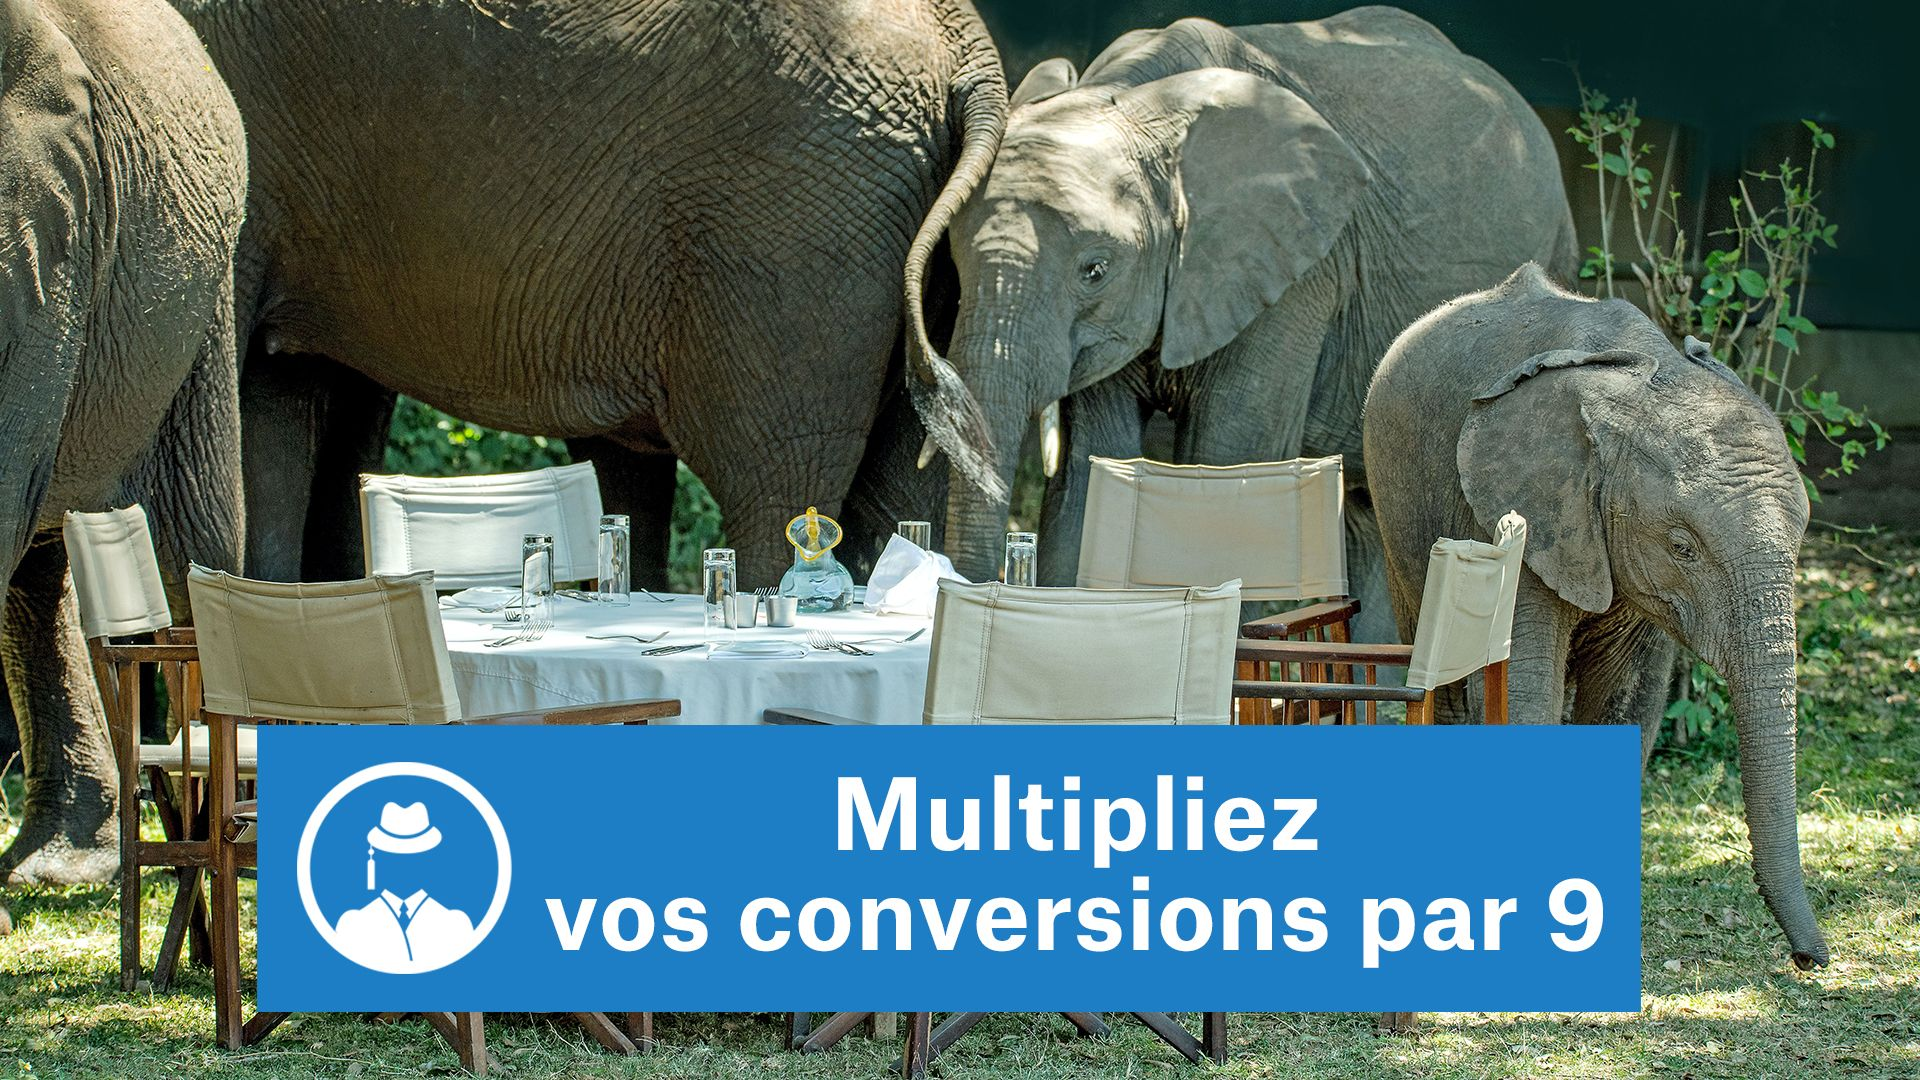 Multipliez vos conversions par 9 #GrowthHacking #WebMarketing #FormationGrowthHacking #CentreDeFormationFrance #TunnelAARRR #AARRR #SocialMedia #CommunityManagement #SEO #MarketingDigital #SiteWeb